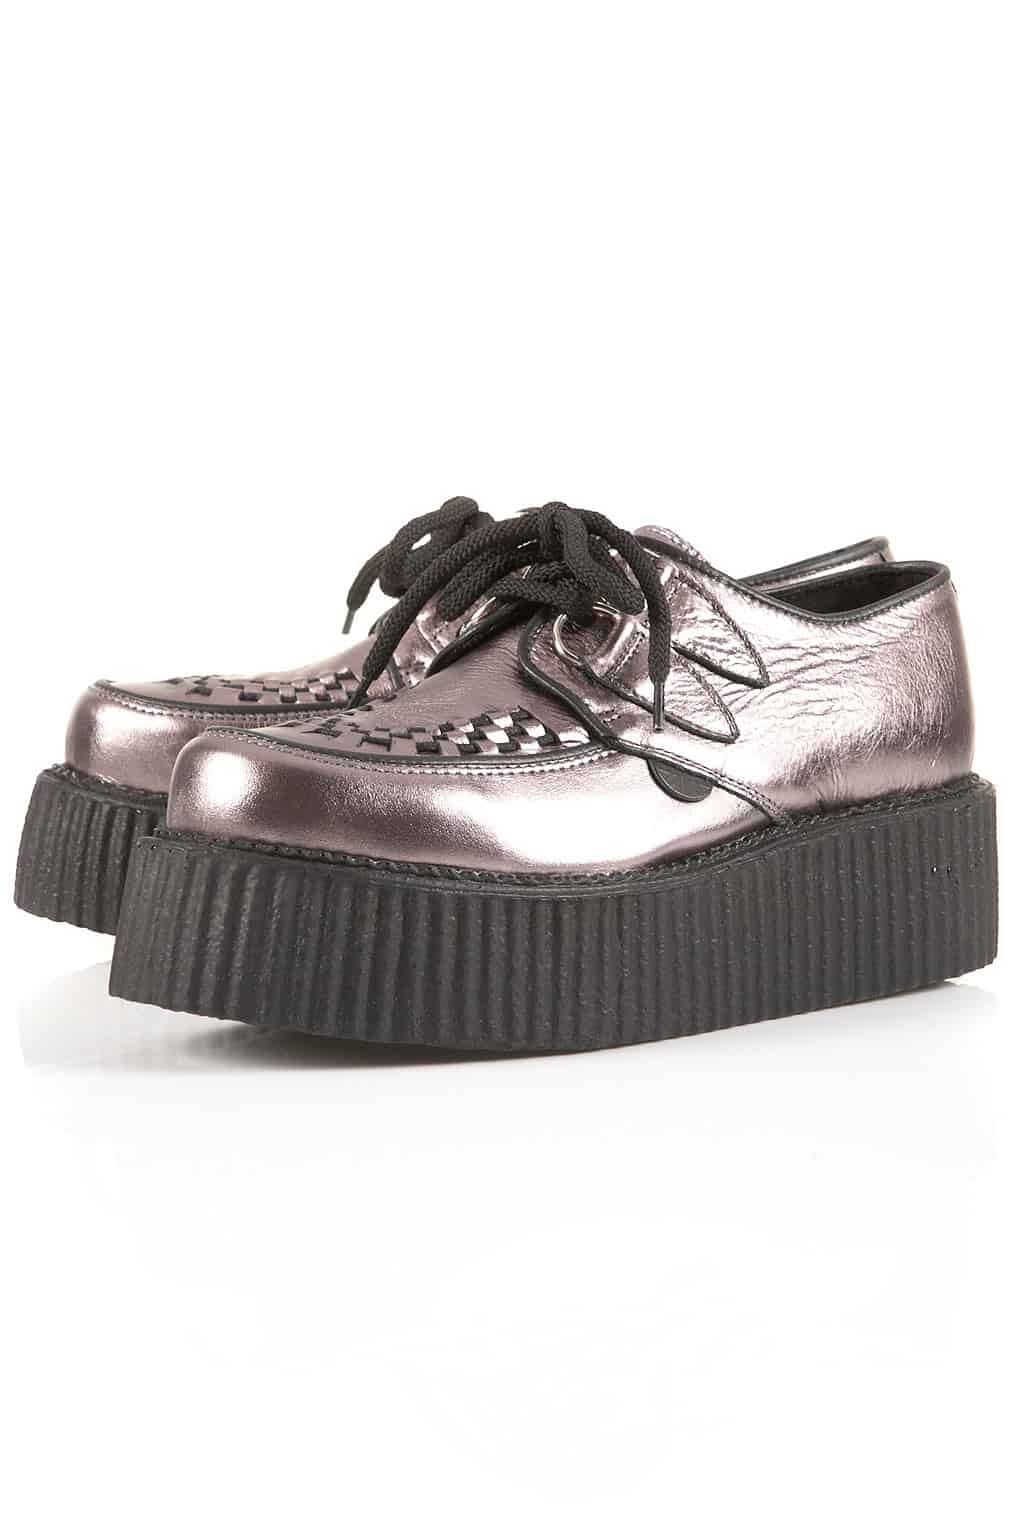 underground double creepers topshop Thick Soles Alert: Are You Loving Creepers Or Not?